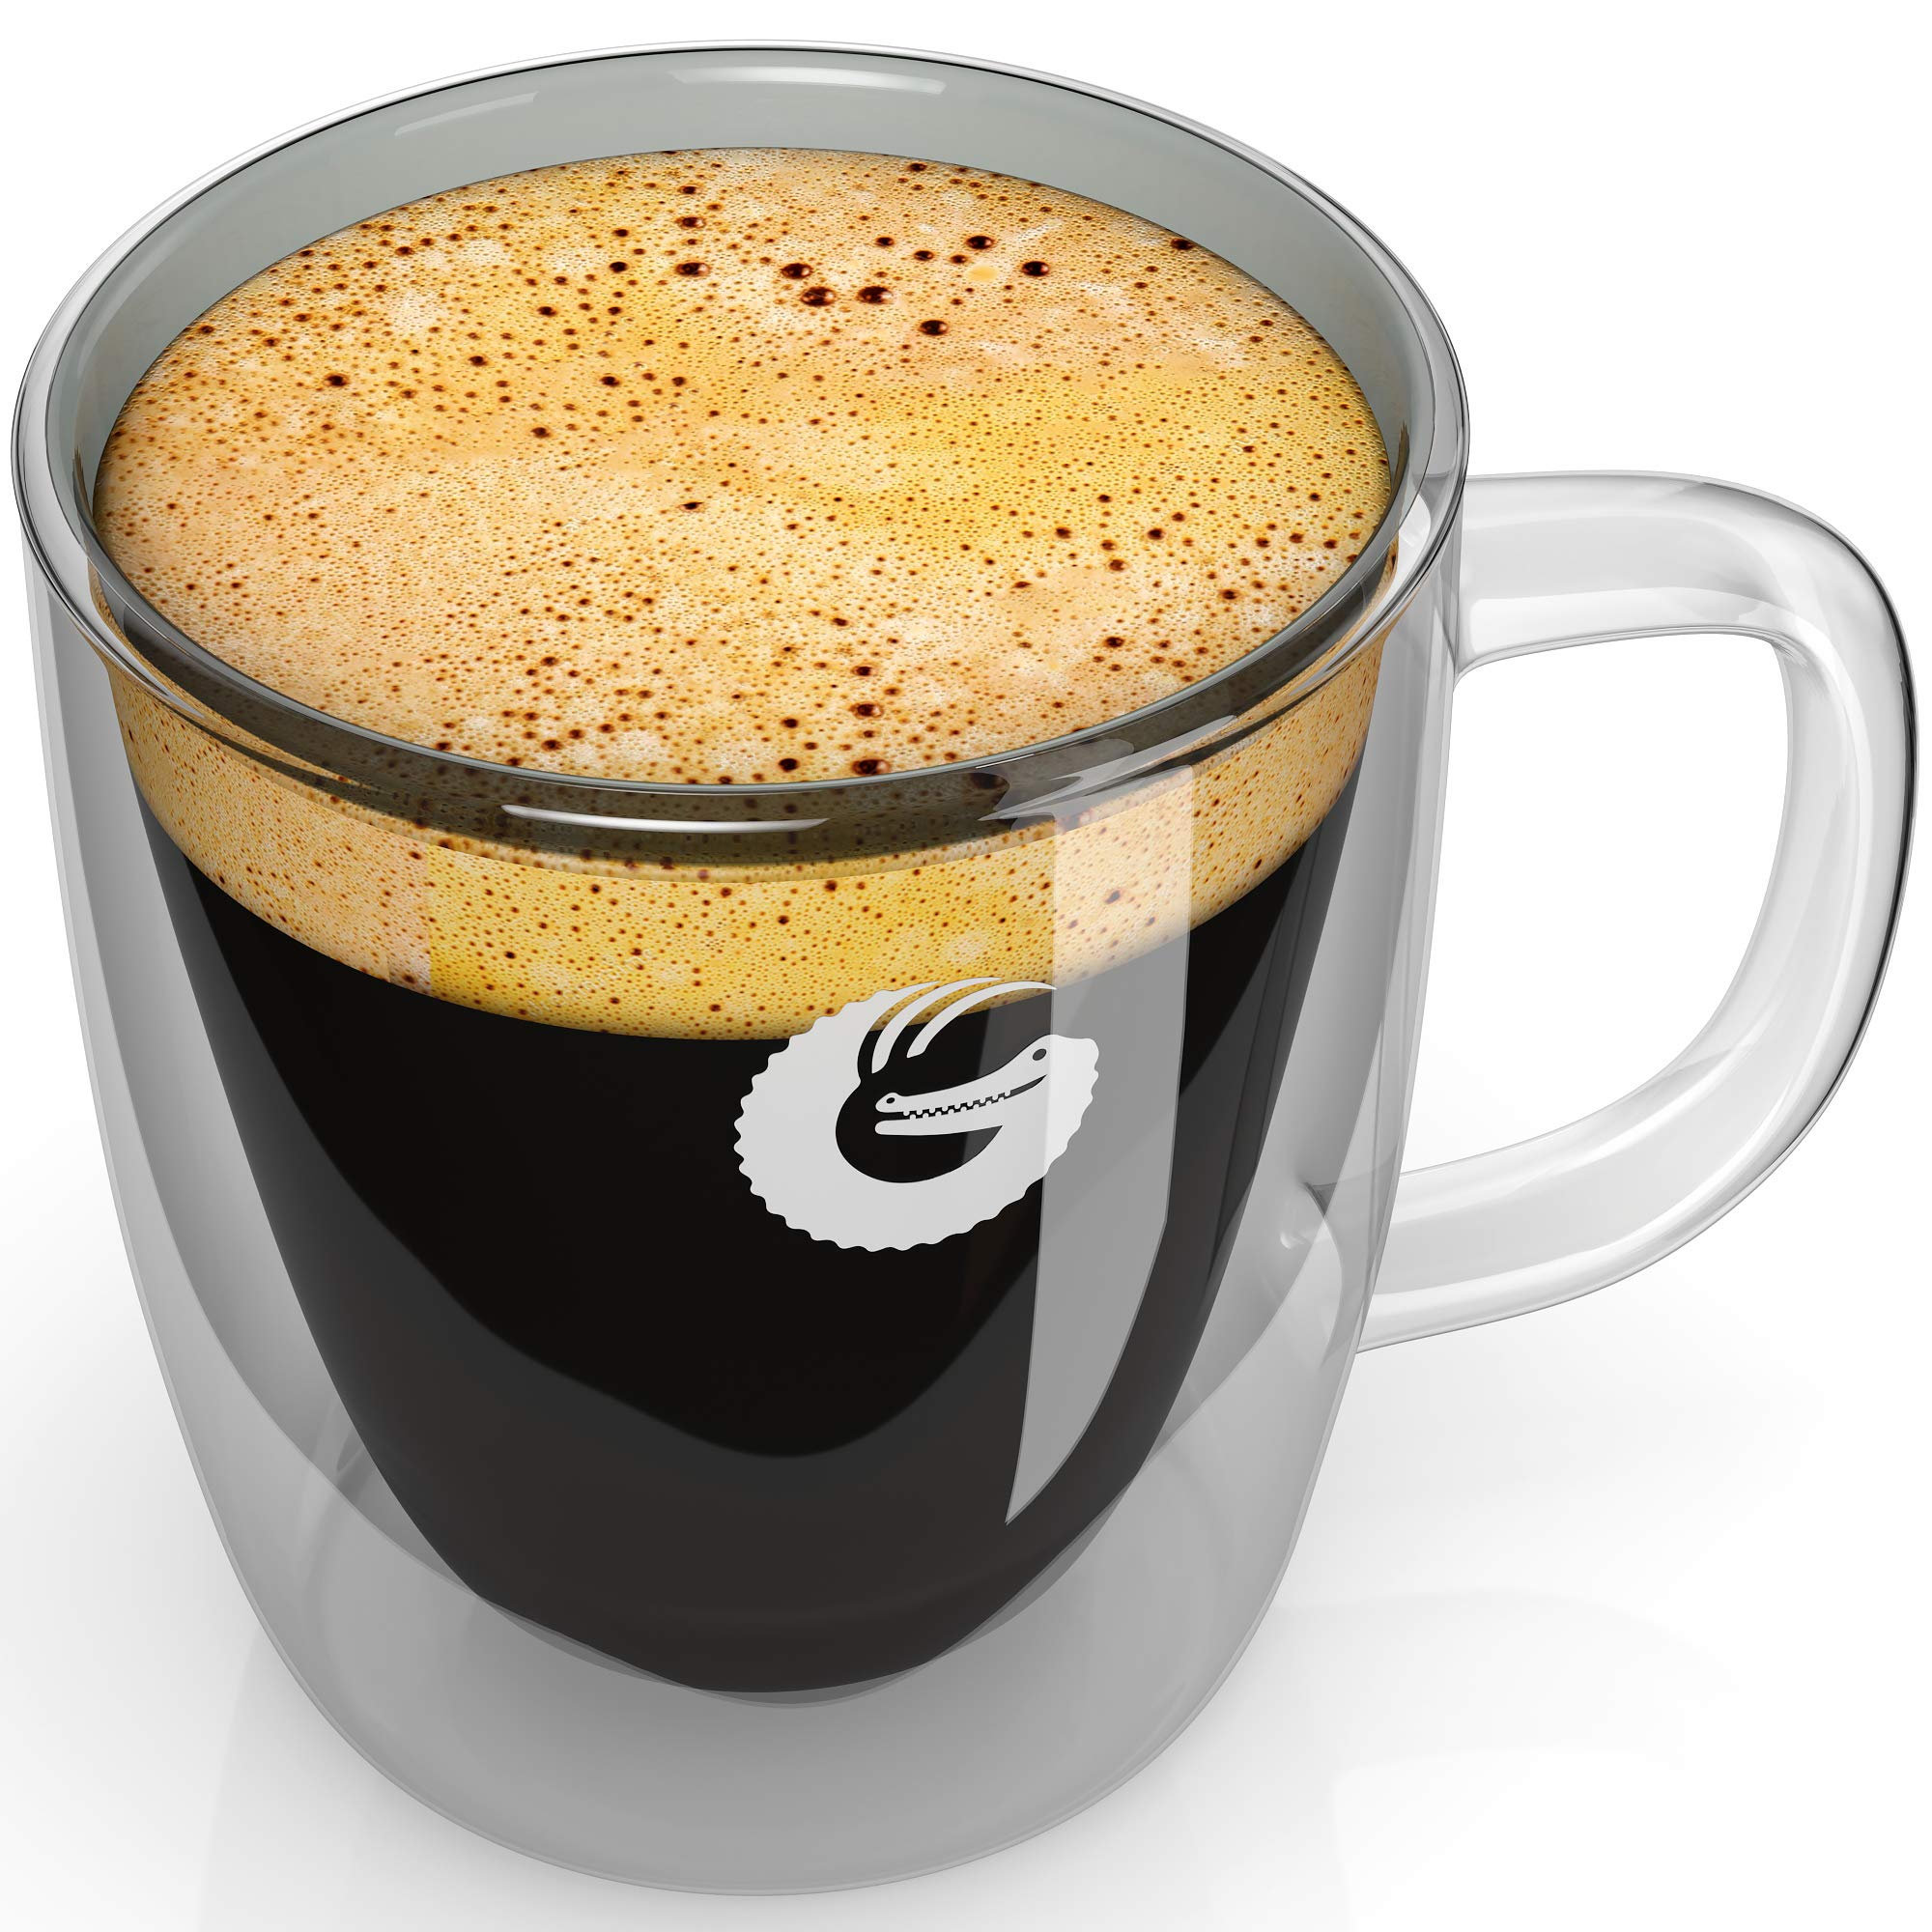 Coffee Gator Insulated Glass Mug - Hotter-For-Longer Thermal Cup - 1 x 12 ounce by Coffee Gator (Image #1)